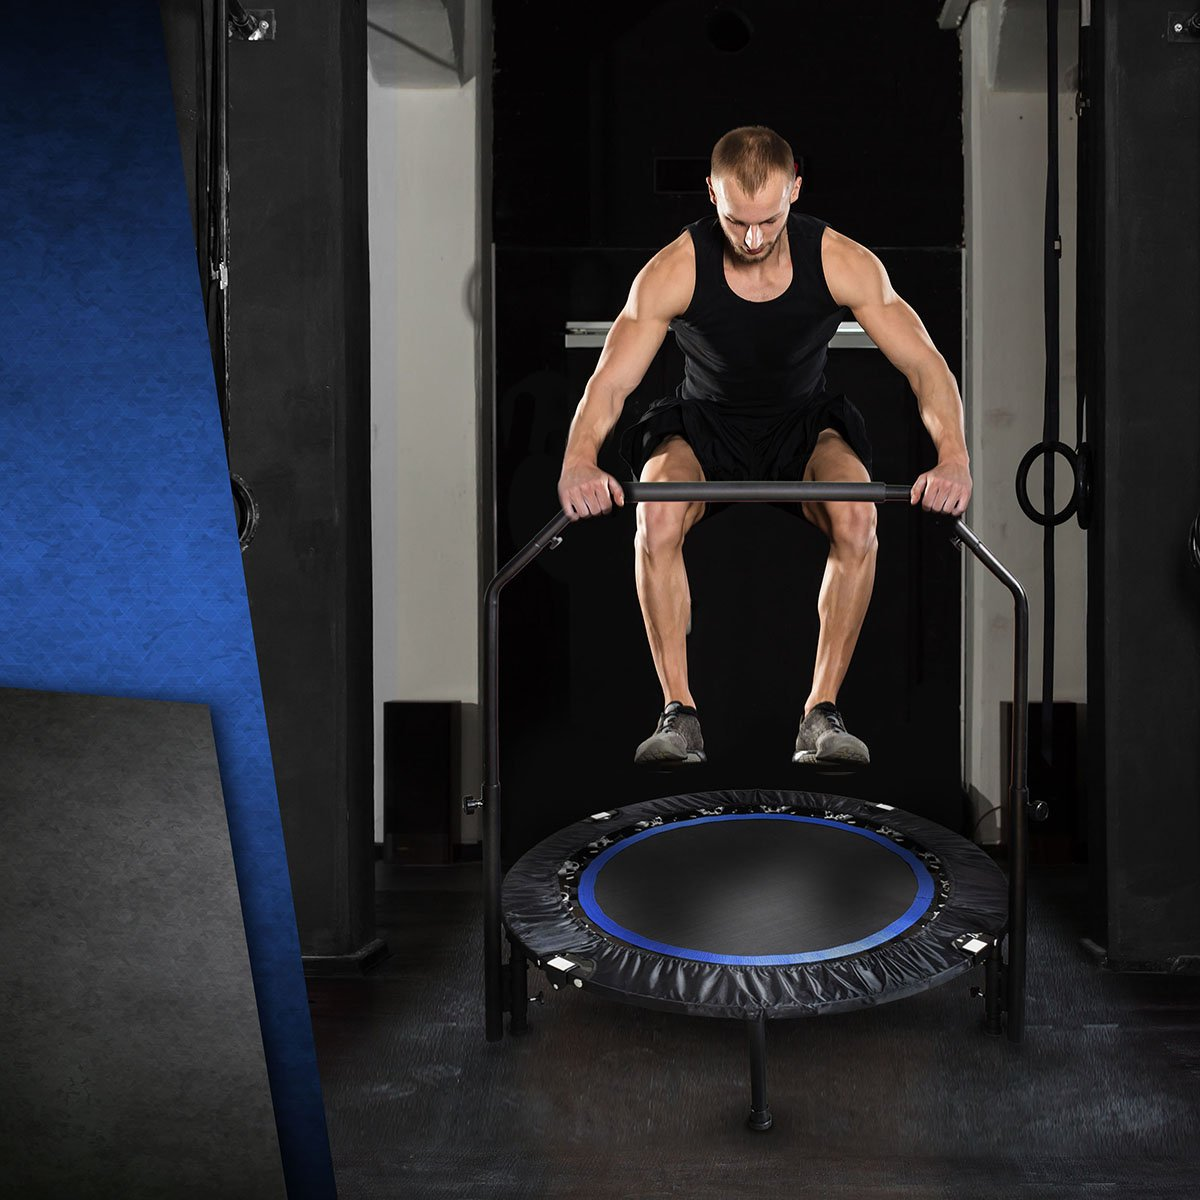 Mini Exercise Trampoline for Adults - Indoor Fitness Rebounder with Adjustable Handle Bar for Kids - Spring Cover and Folding Legs For Small Storage by Activox (Image #6)